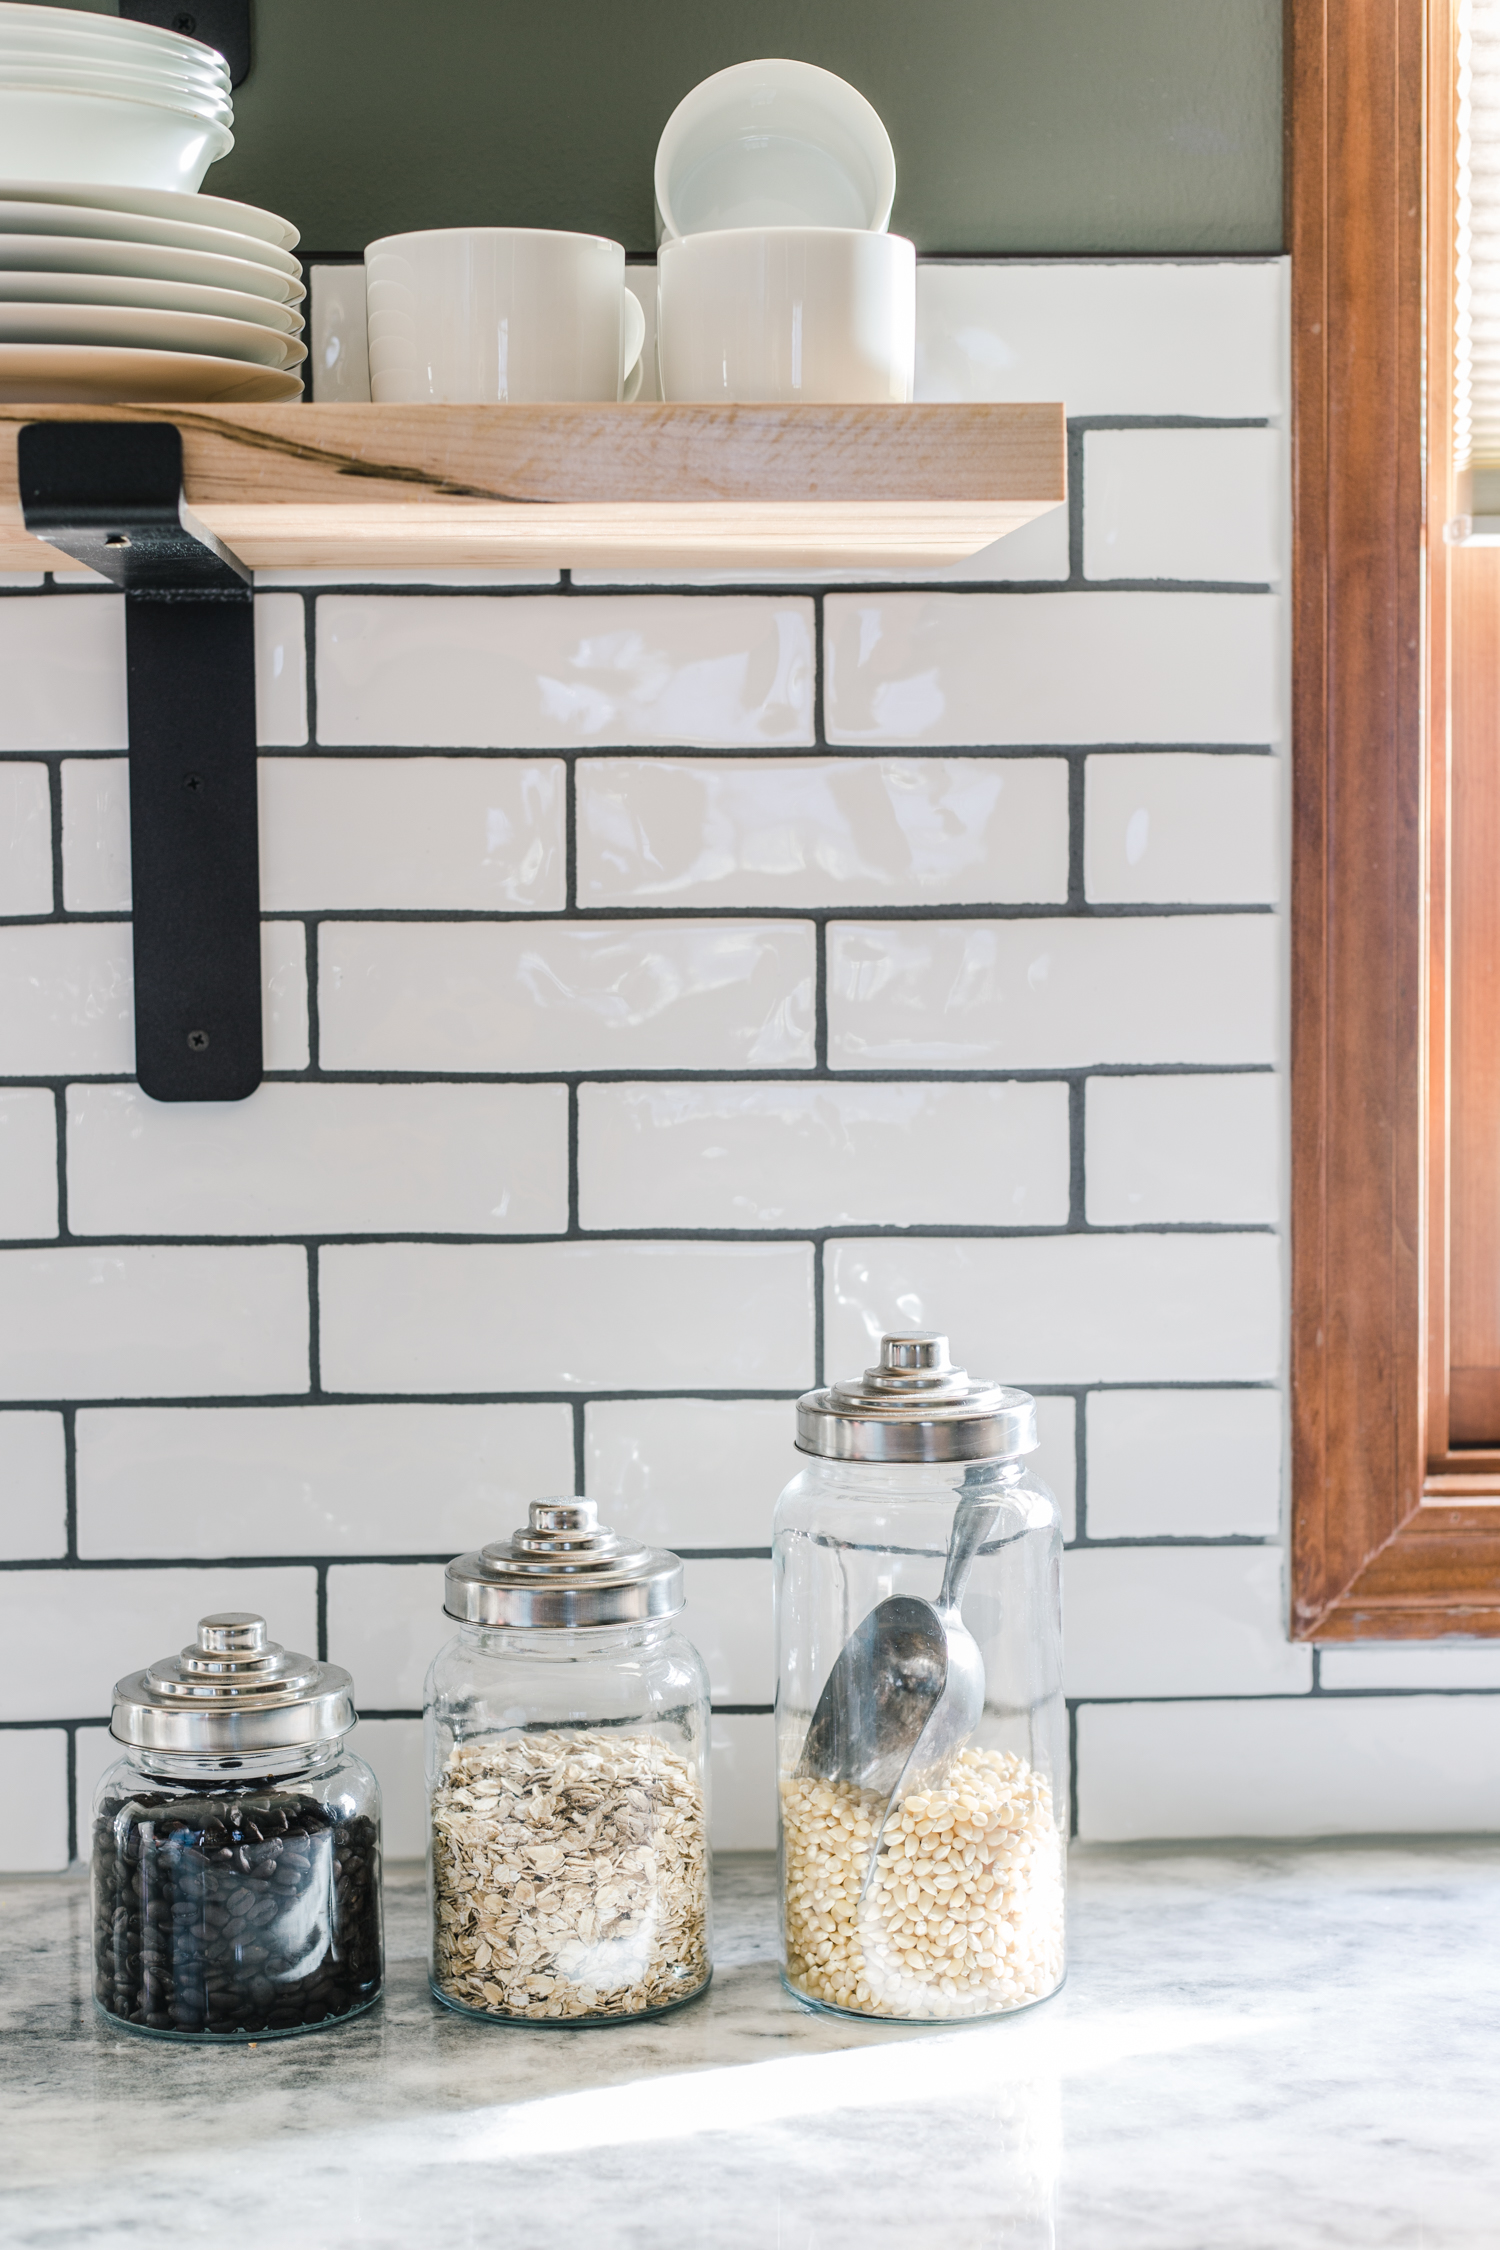 white subway tile with dark grout and floating shelves in kitchen